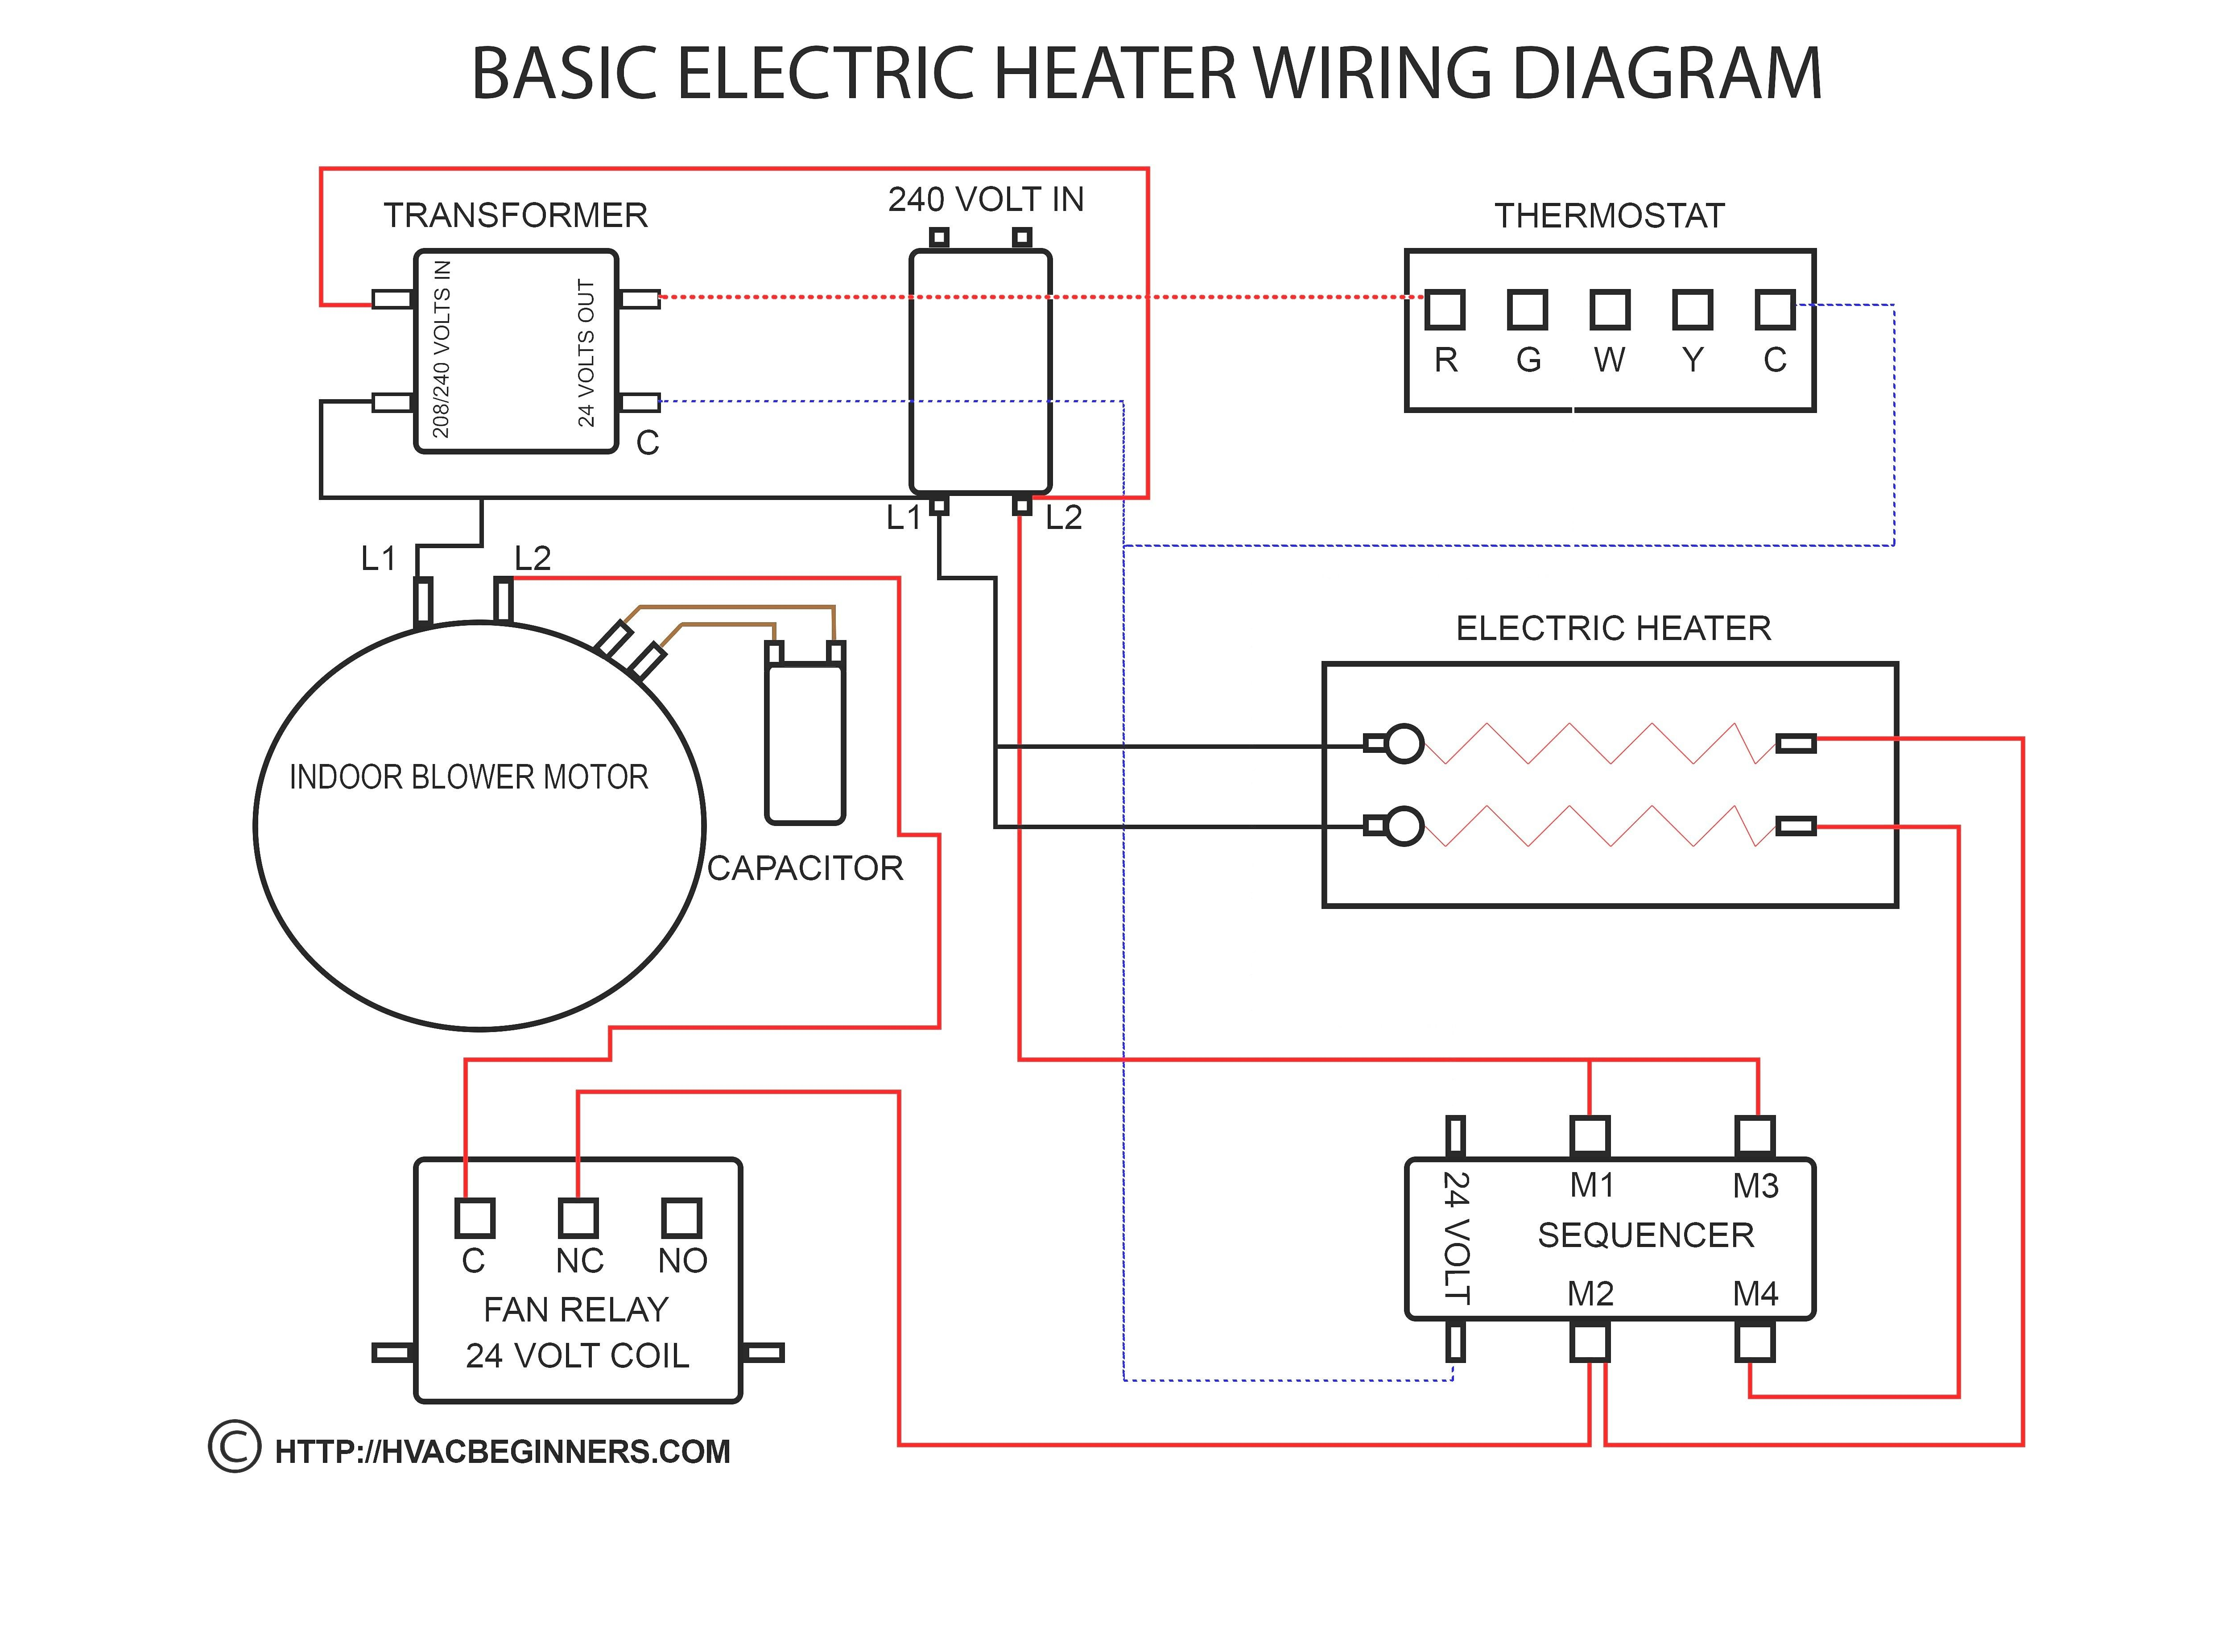 Unique Wiring Colors Electrical Diagram Wiringdiagram Diagramming Diagramm Visuals V Electrical Circuit Diagram Basic Electrical Wiring Thermostat Wiring